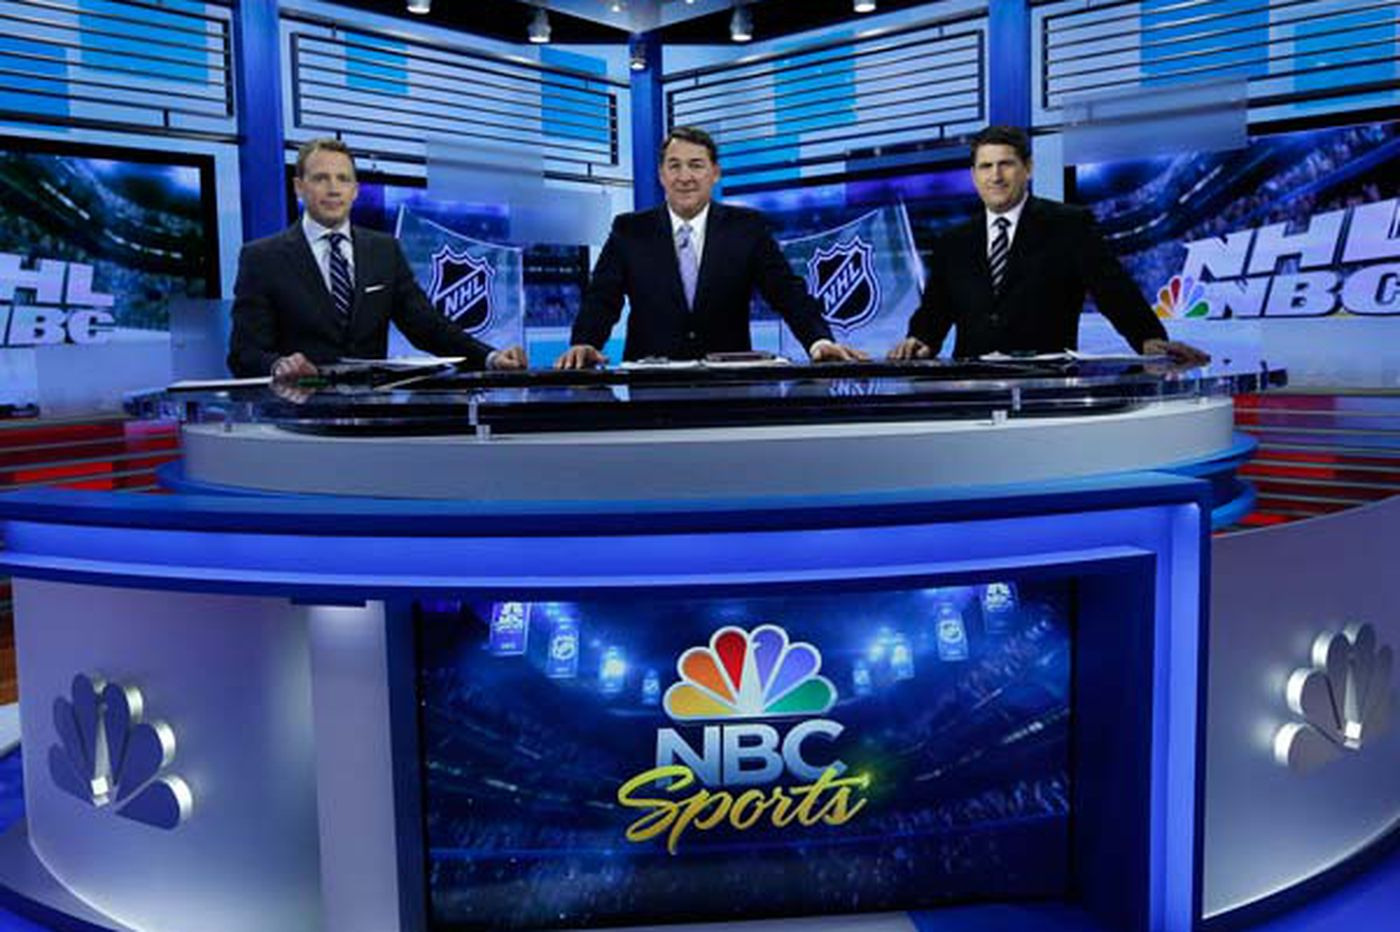 NBC Sports PointsBet